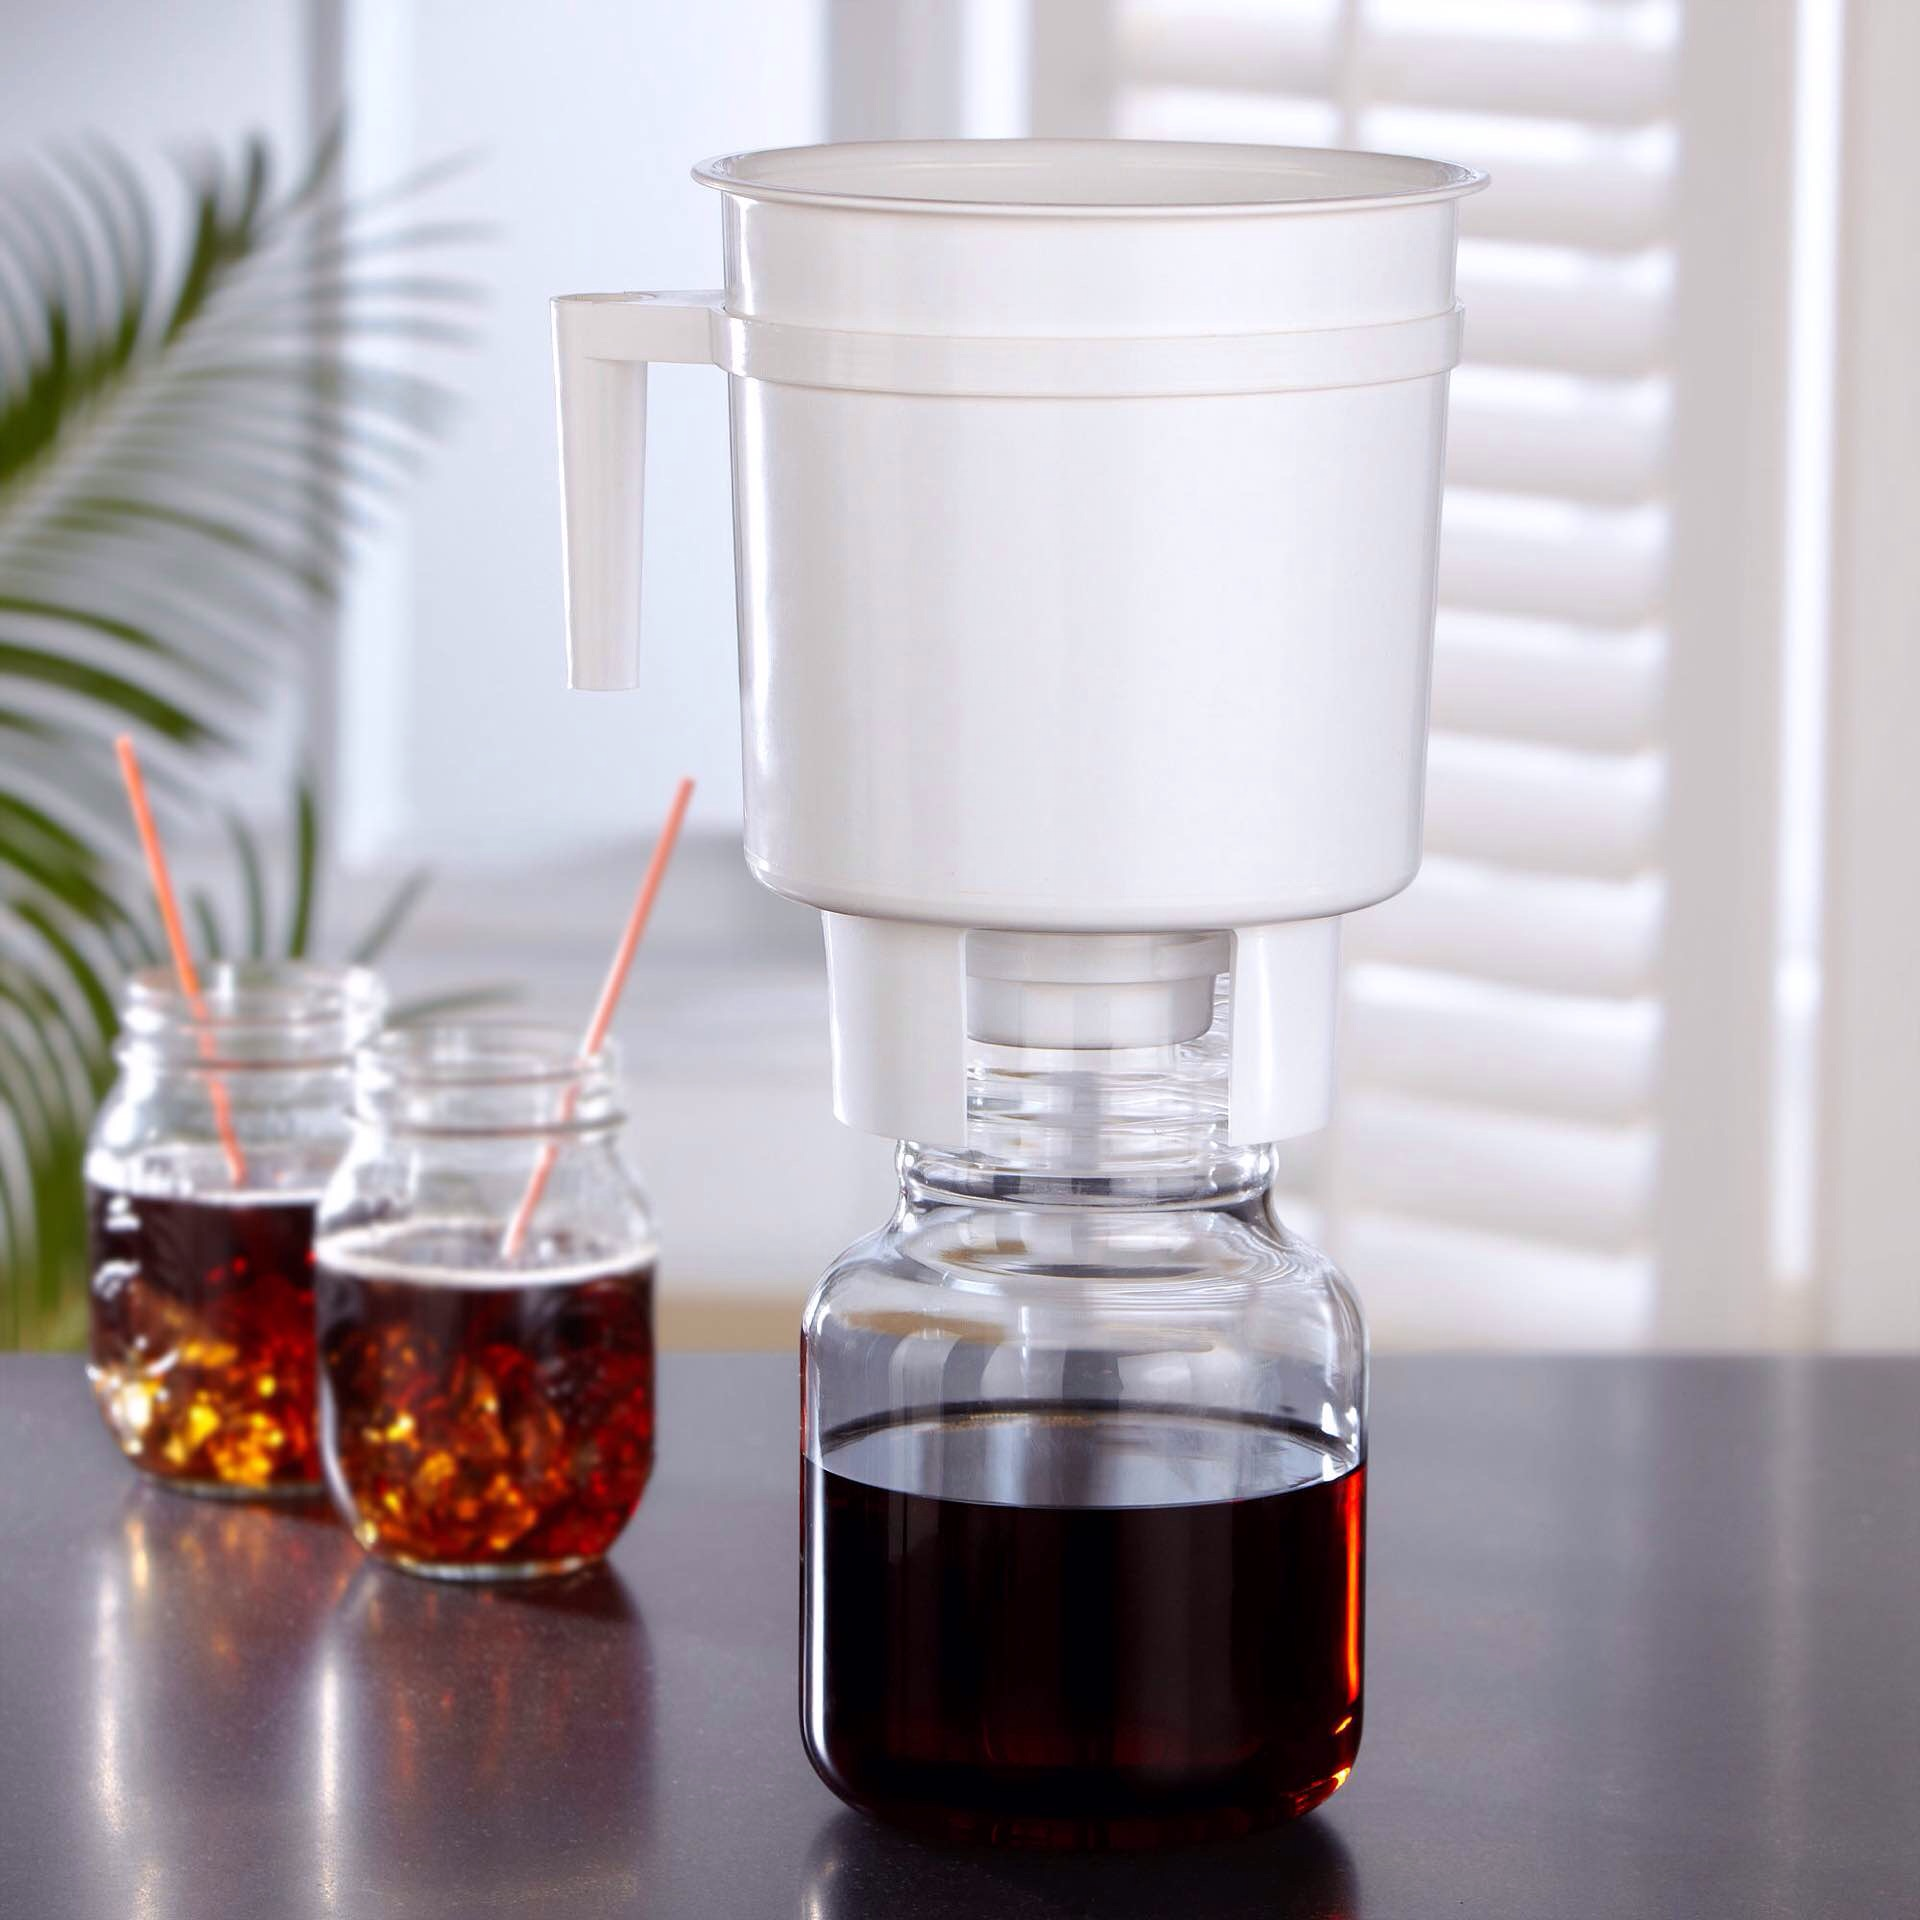 The Toddy cold brew system. ($28)